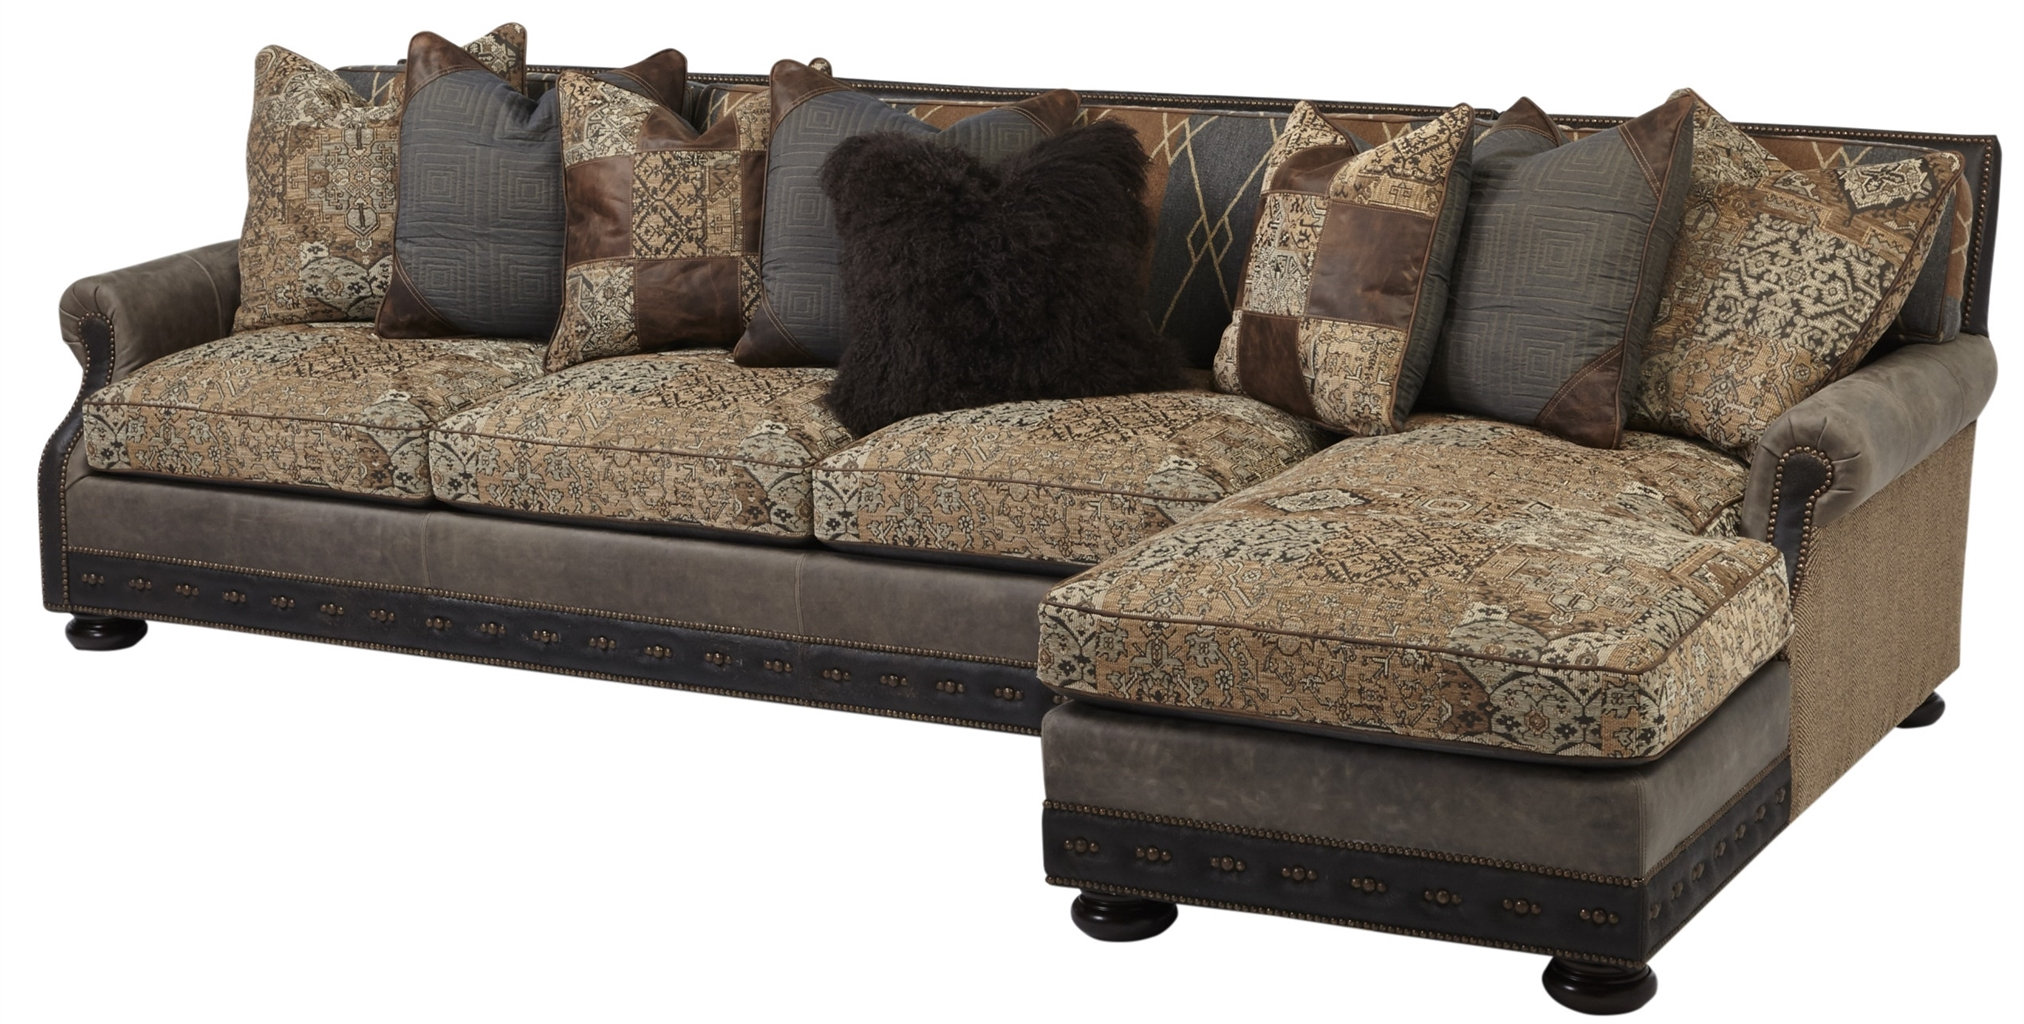 cool sofa with chaise lounge high end furnishings. Black Bedroom Furniture Sets. Home Design Ideas